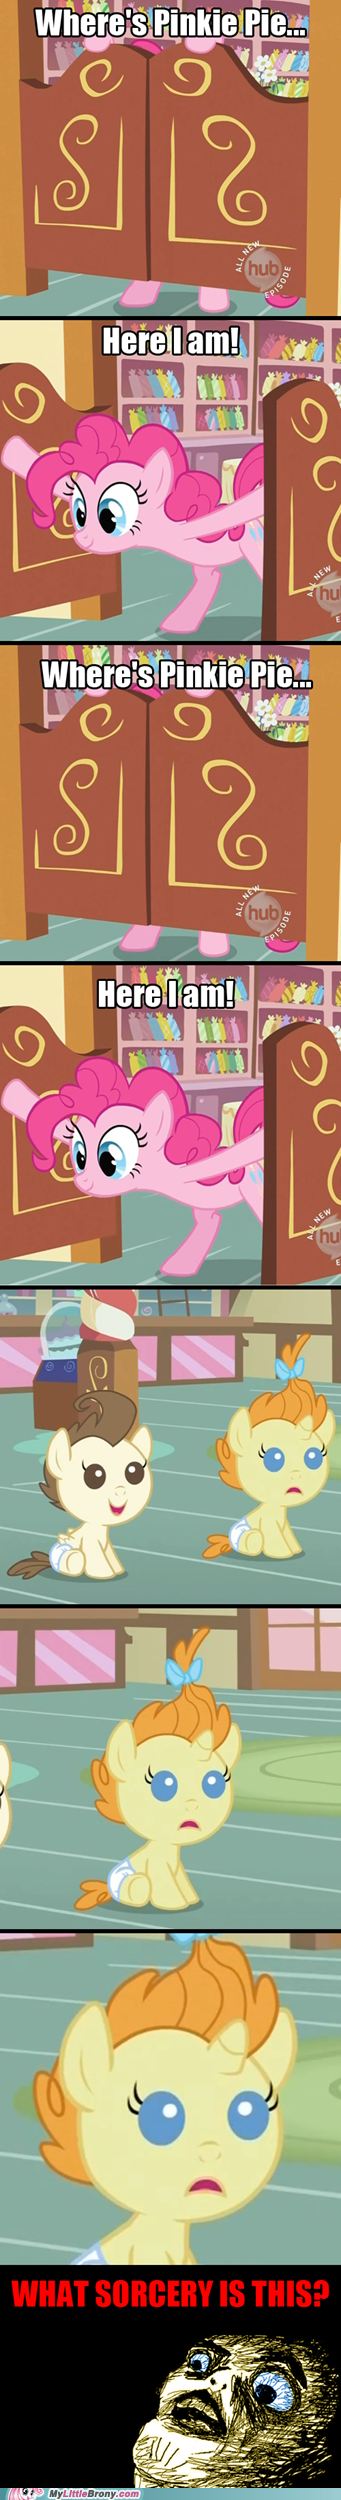 baby cakes best of week comics here i am pinkie pie what sorcery is this - 5692735232